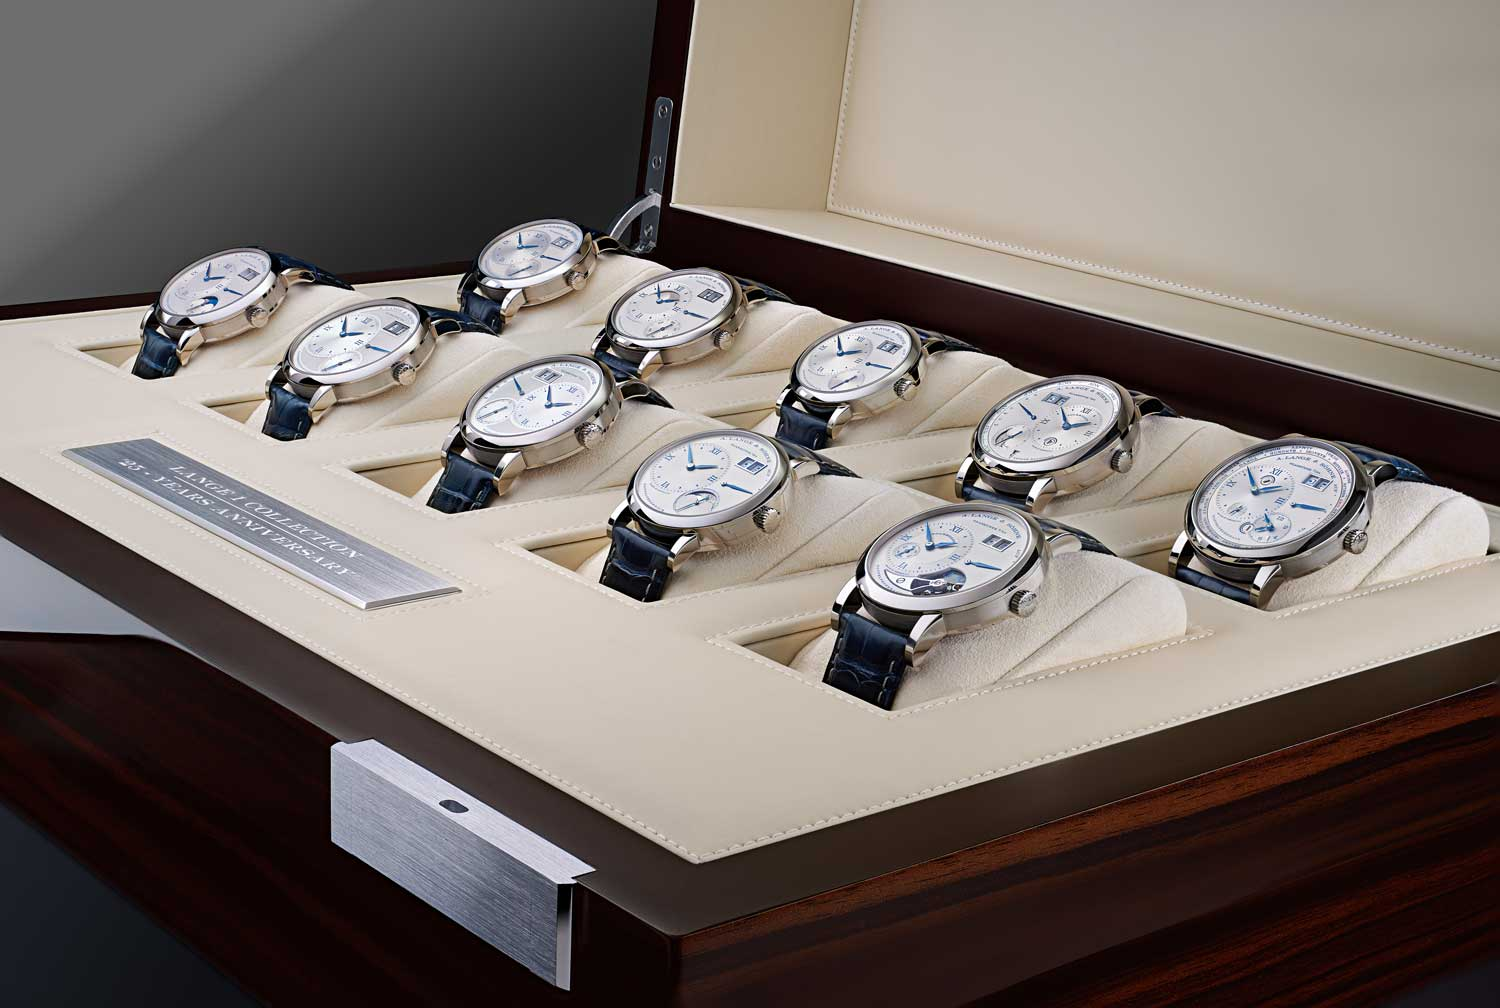 """On the occasion of the Lange 1's 25th anniversary, the brand produced ten executions of various Lange 1 watches with argent-coloured dials made of solid silver with deep-blue numbers, hour markers and date numbers, as well as a special engraving done by hand: the anniversary number """"25"""" is shown in a characteristic outsize-date window, framed by a floral pattern"""